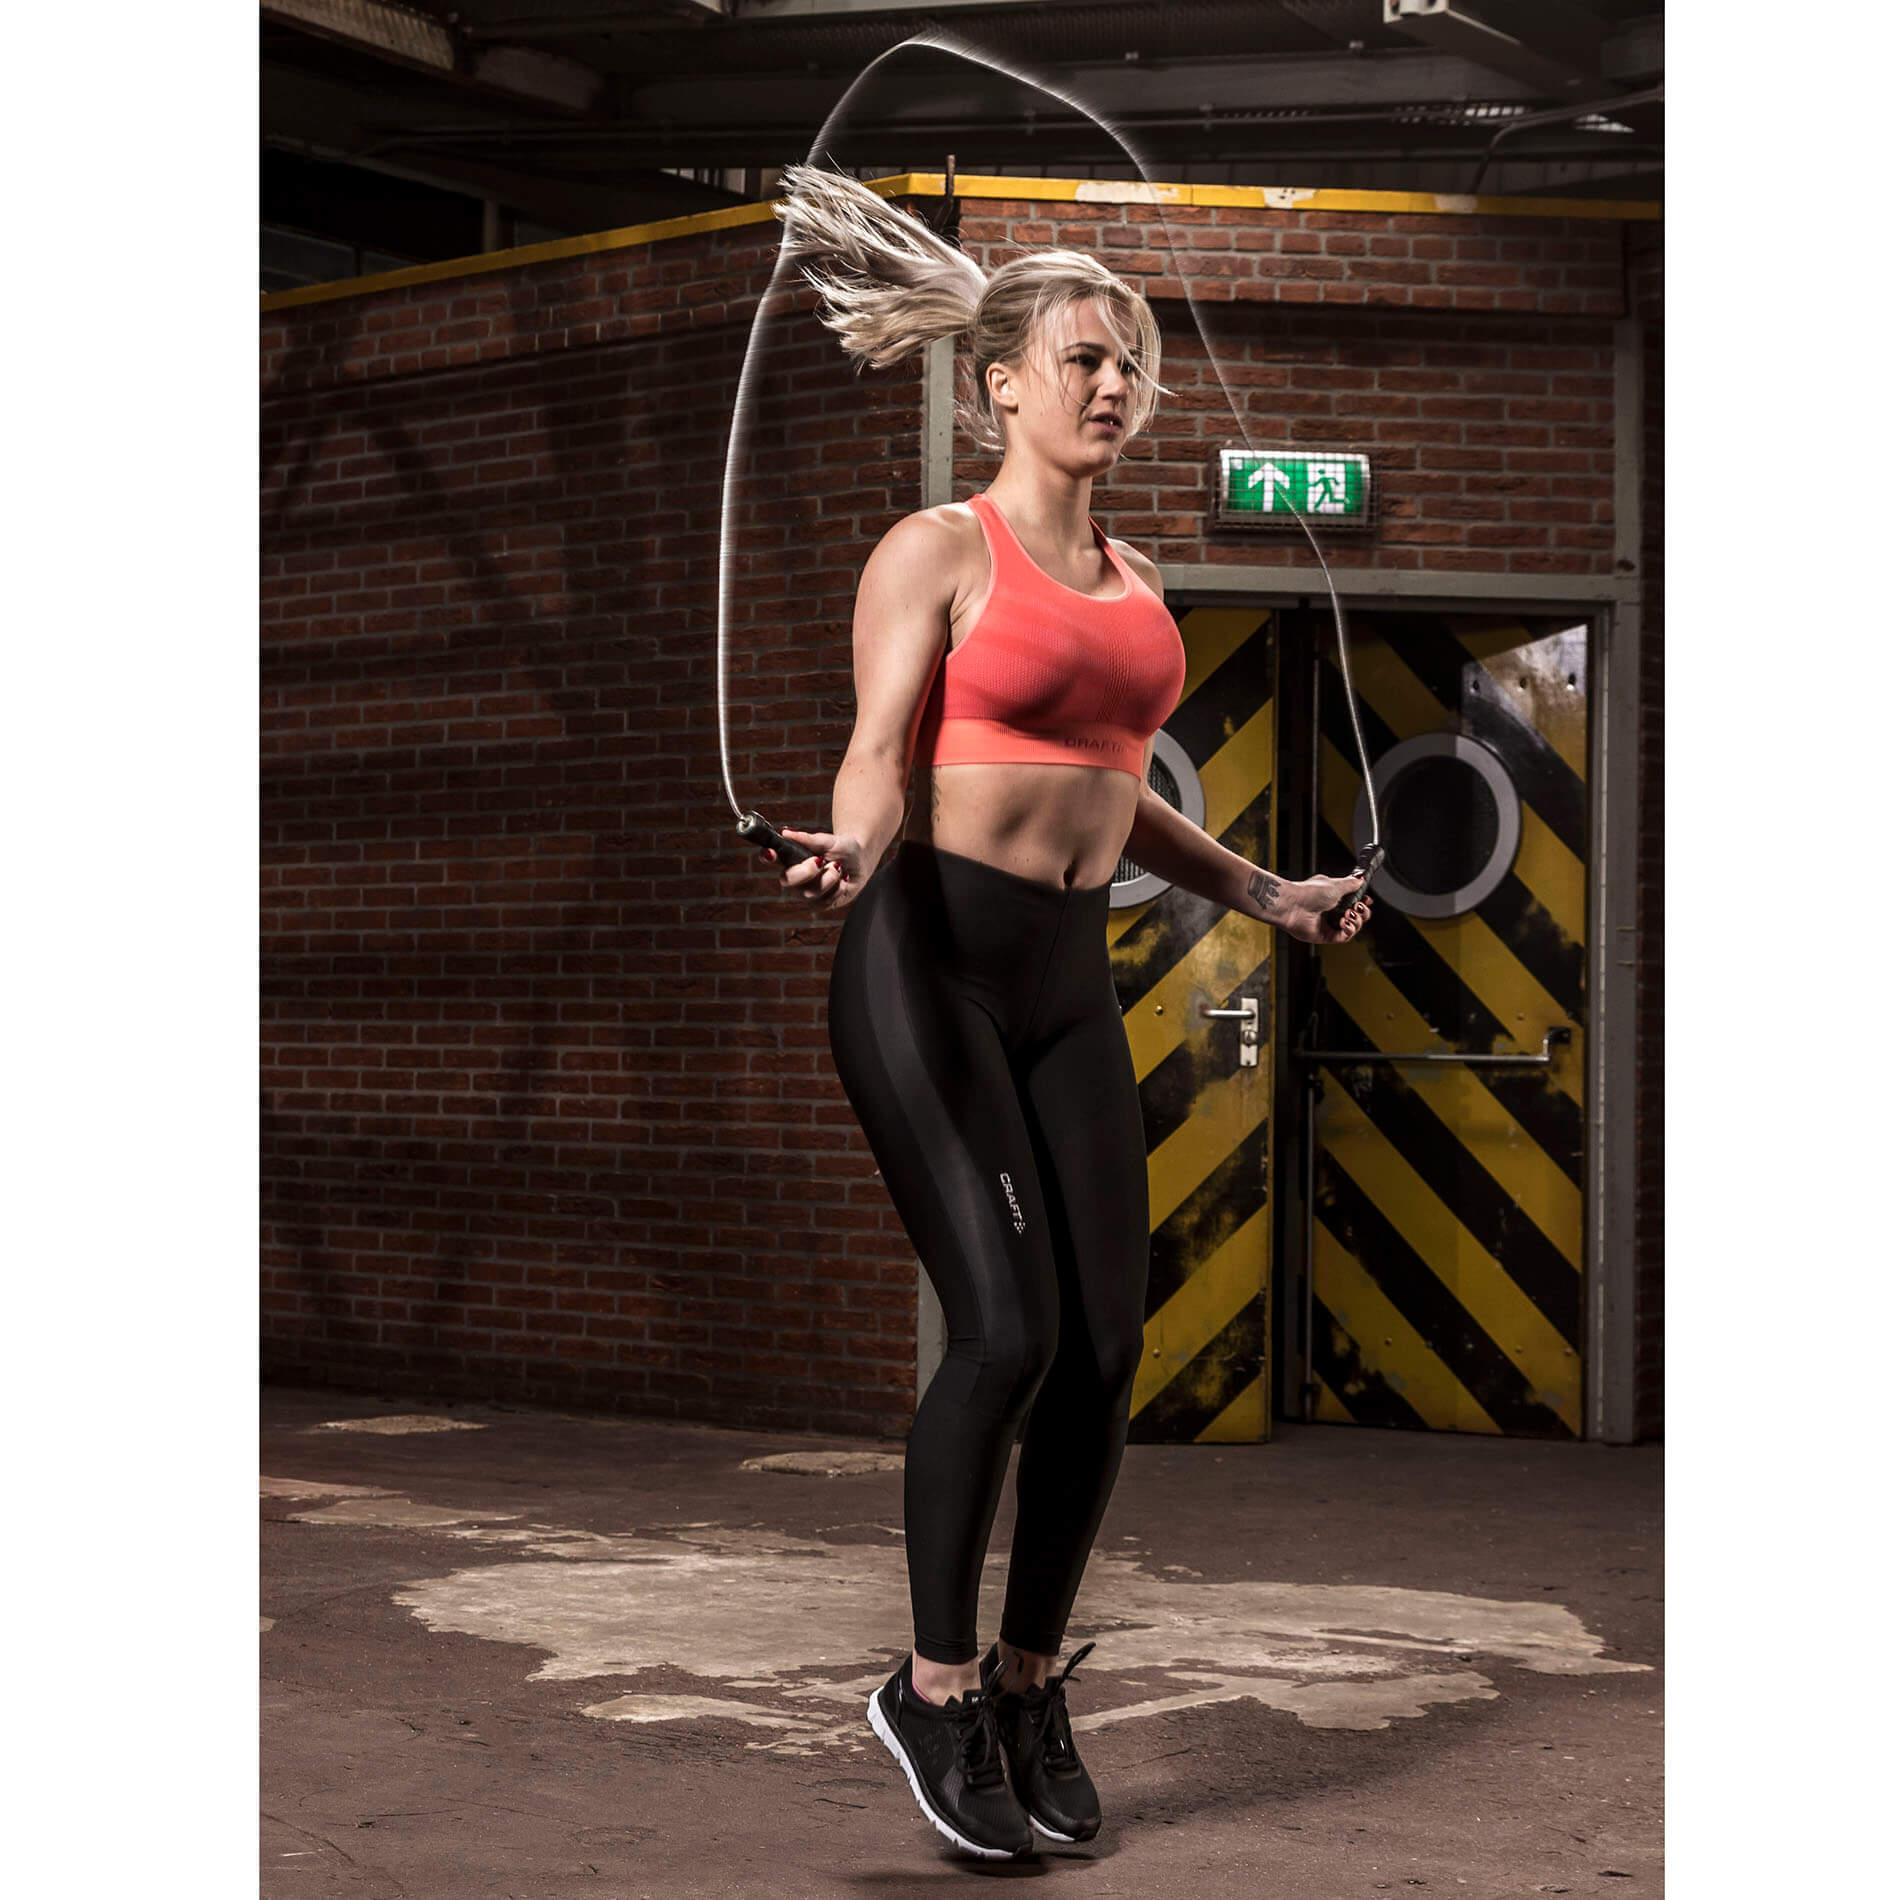 Steel Weighted Pro Jumprope With Sweatband